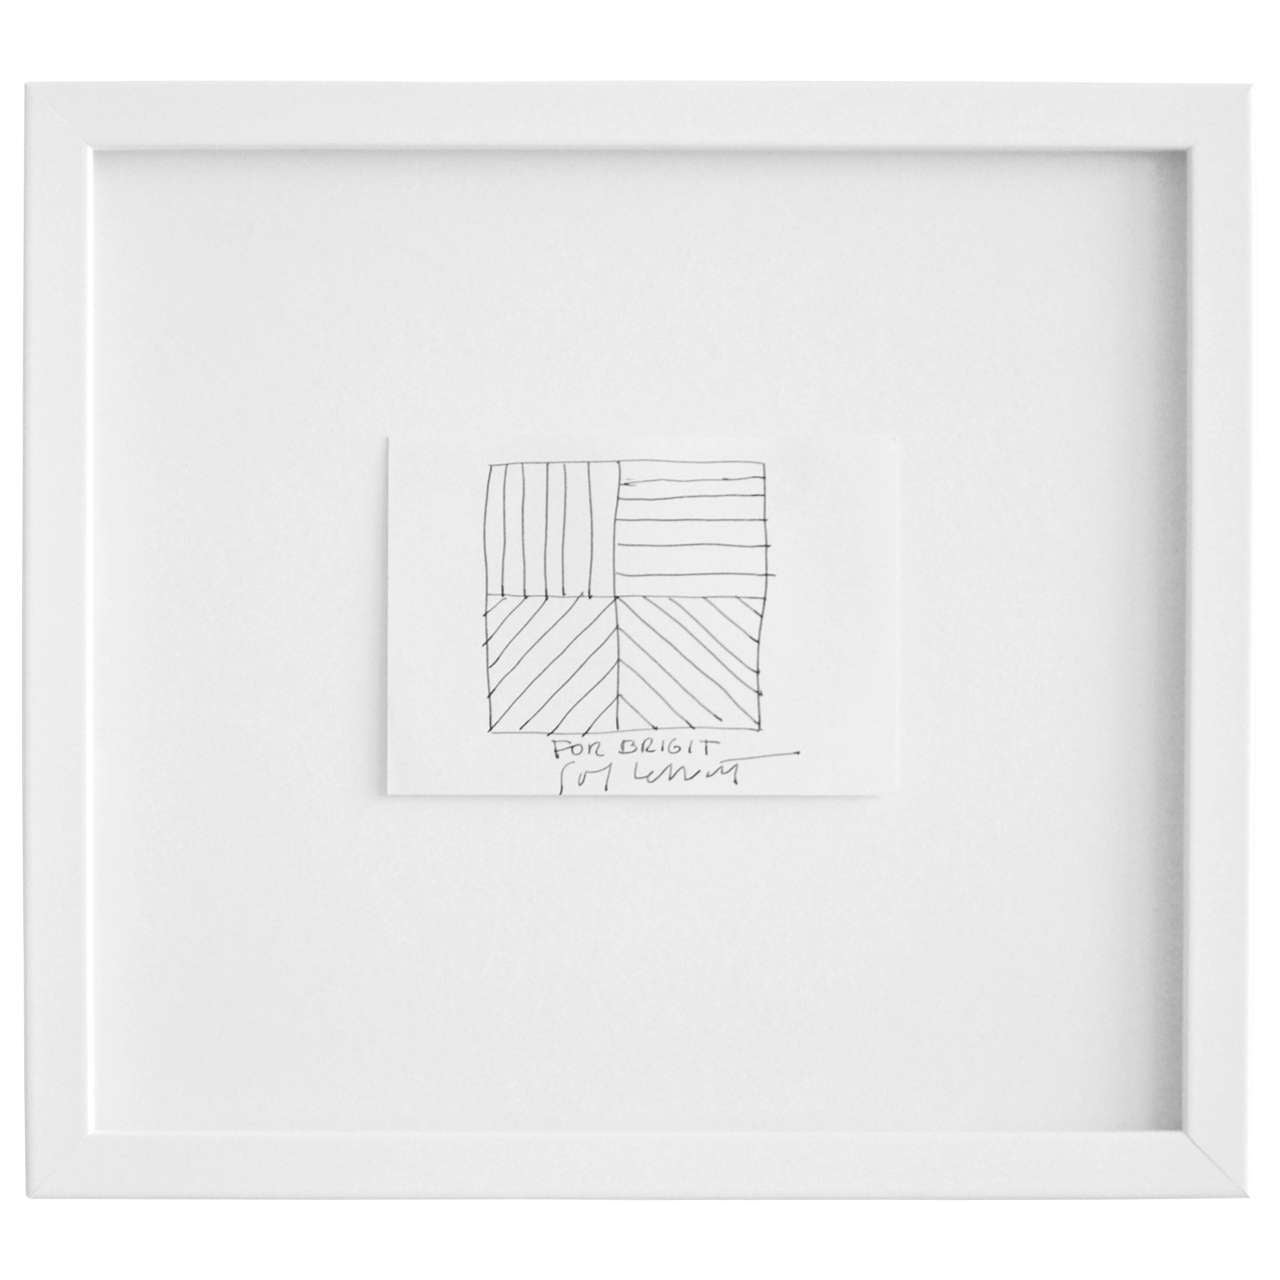 An intimate, geometric drawing on paper by the influential American artist Sol LeWitt (1928-2007) of a square divided into four equal parts. In each section he has drawn lines in all four possible directions, vertical, horizontal, diagonal left and